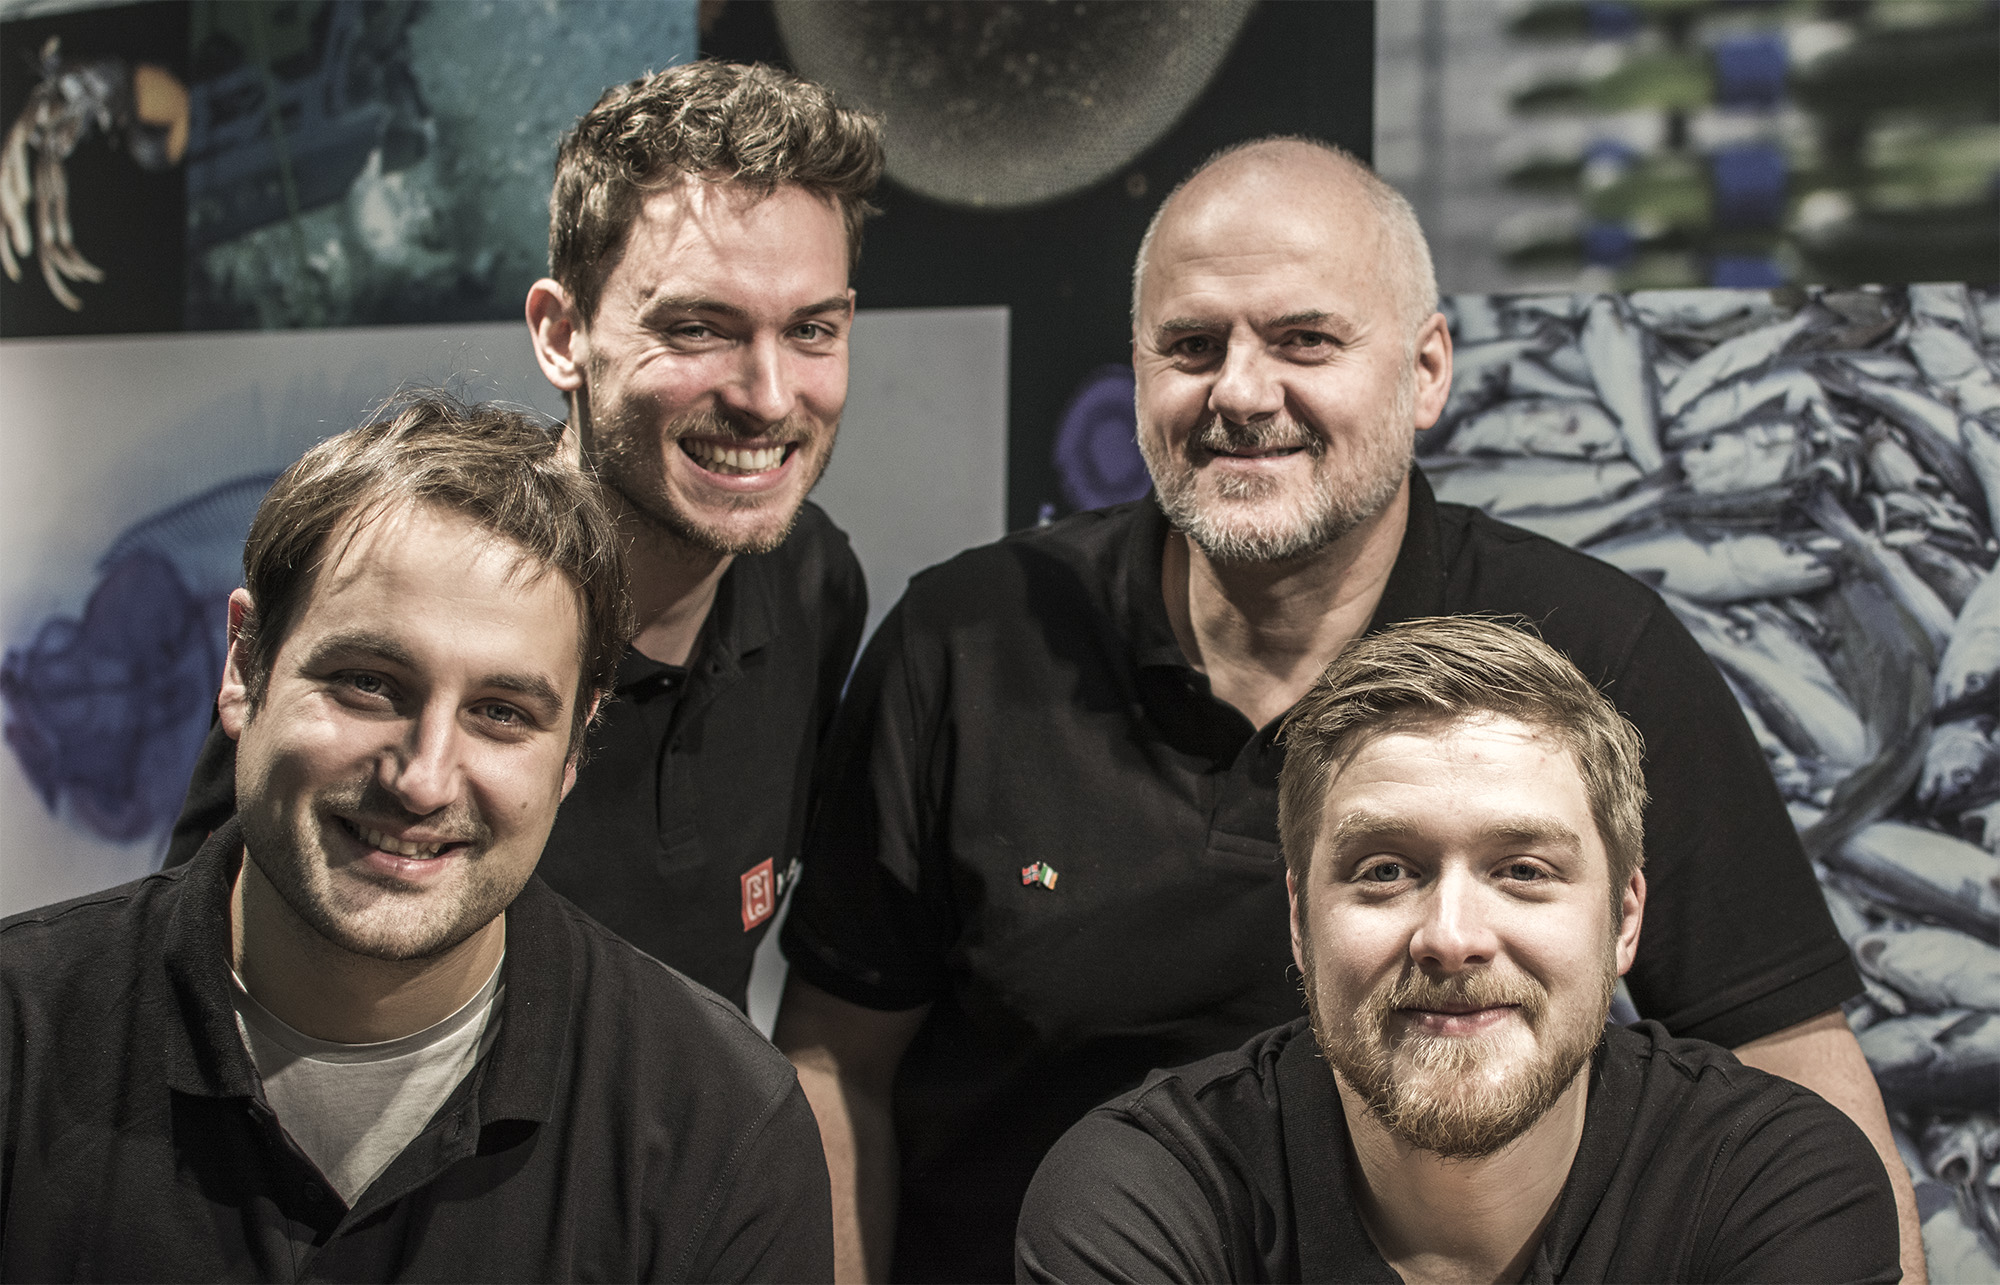 From the left: Carsten (XYZ), Georg (XYZ), Wayne (XYZ) and Emil (XYZ)